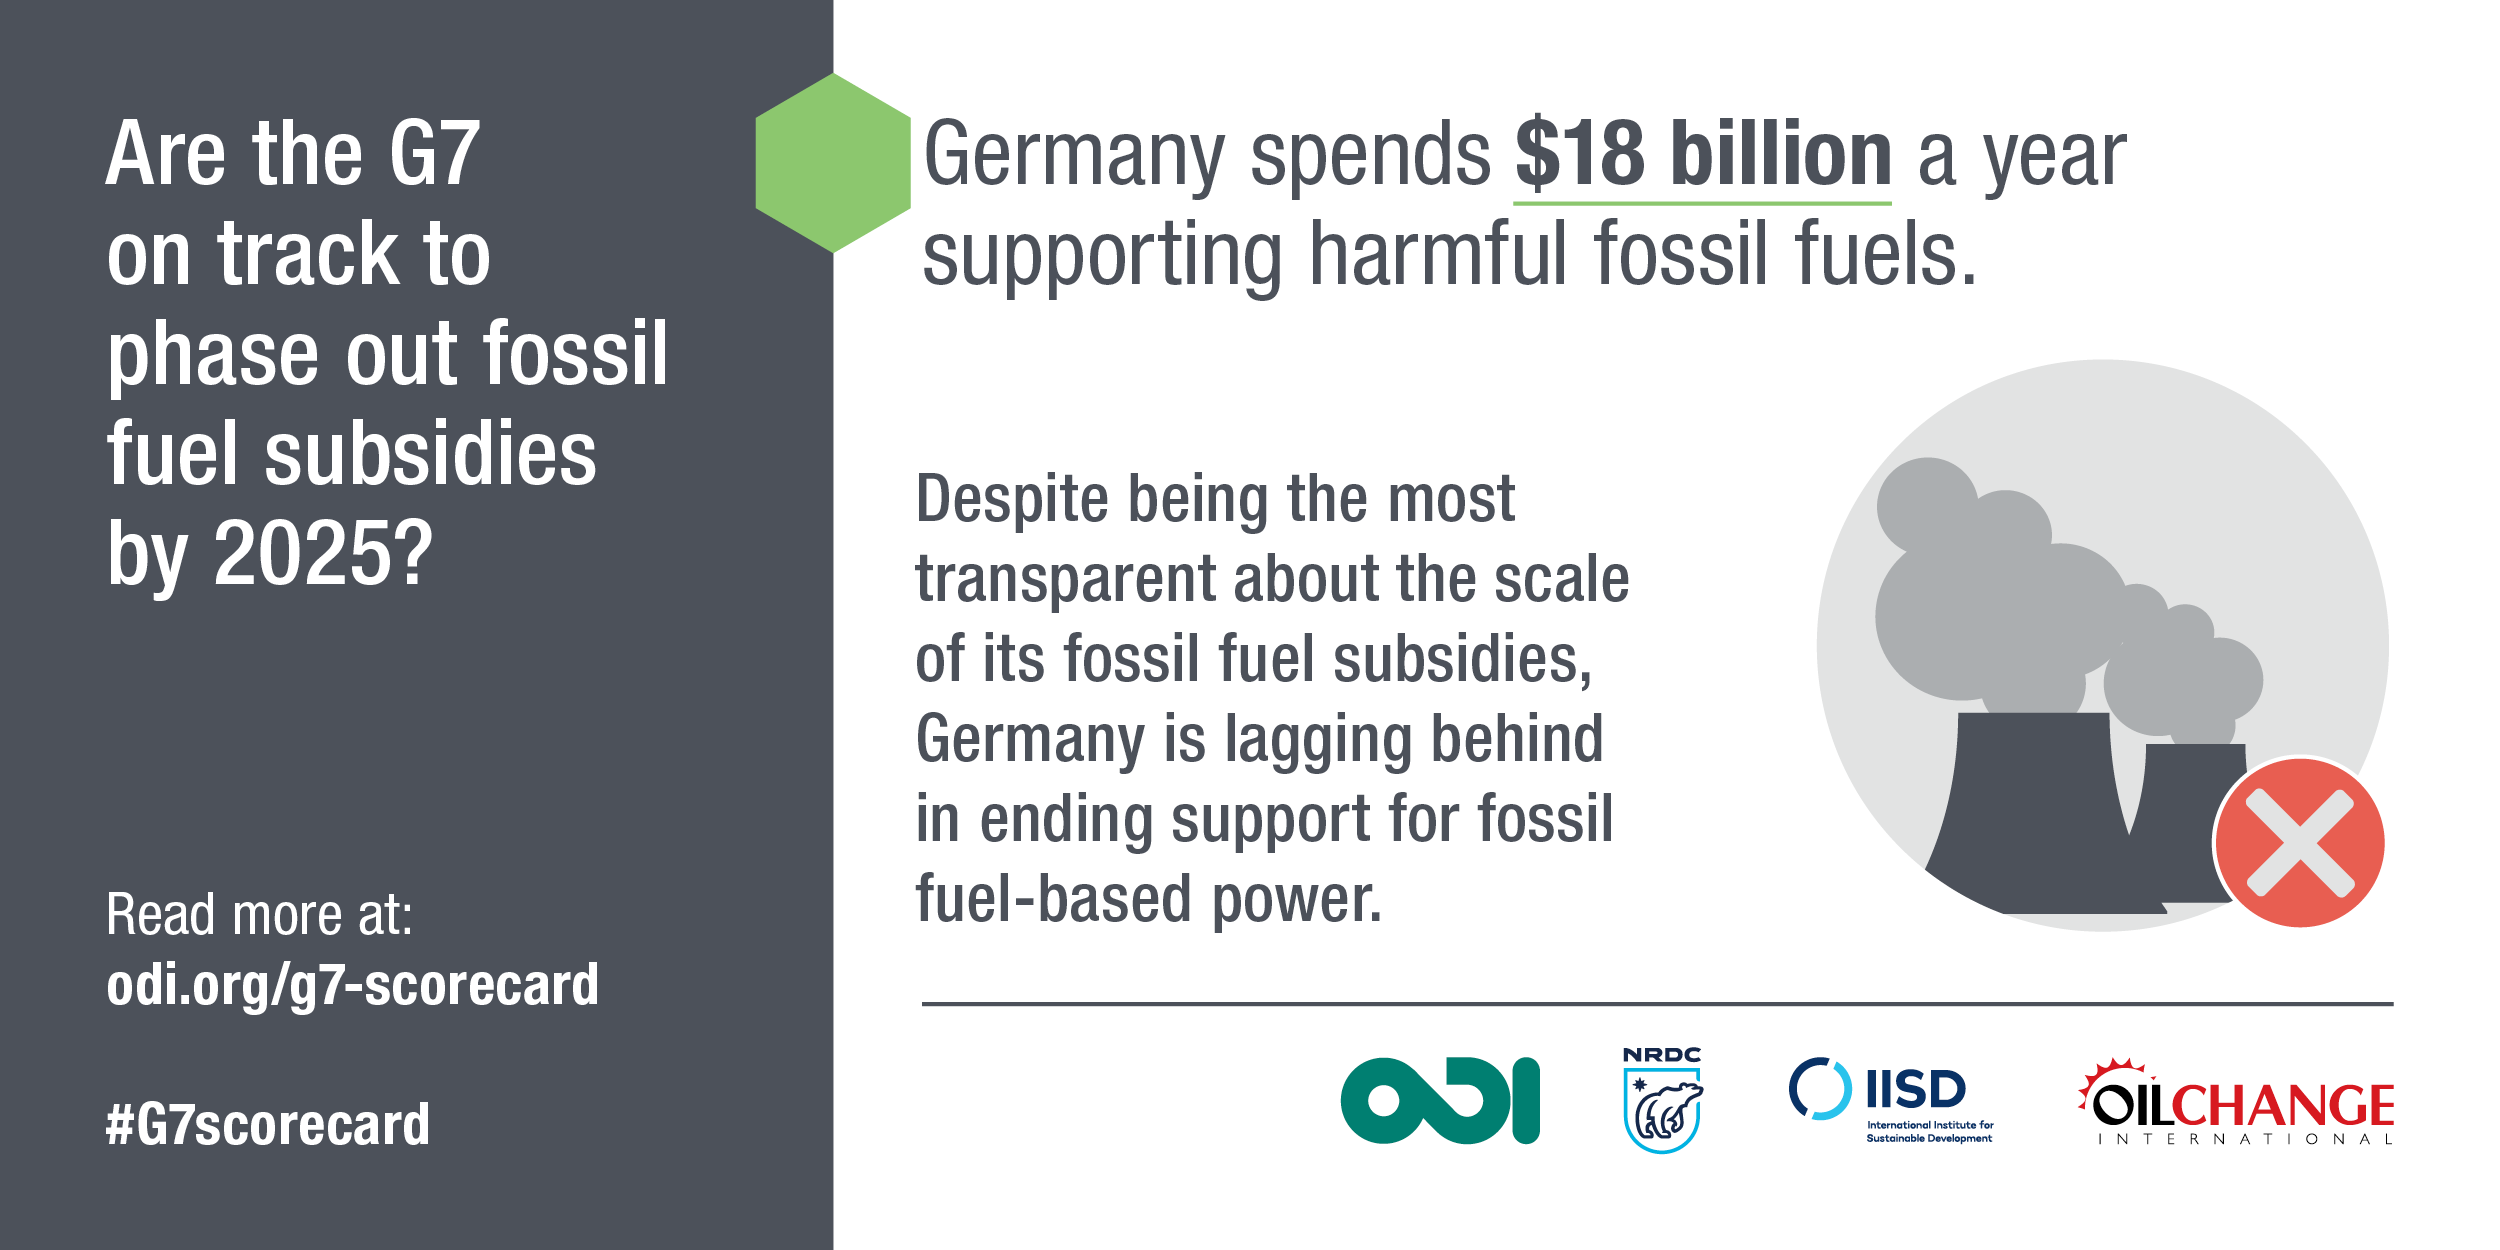 Germany spends $18 billion a year supporting harmful fossil fuels. Image: ODI